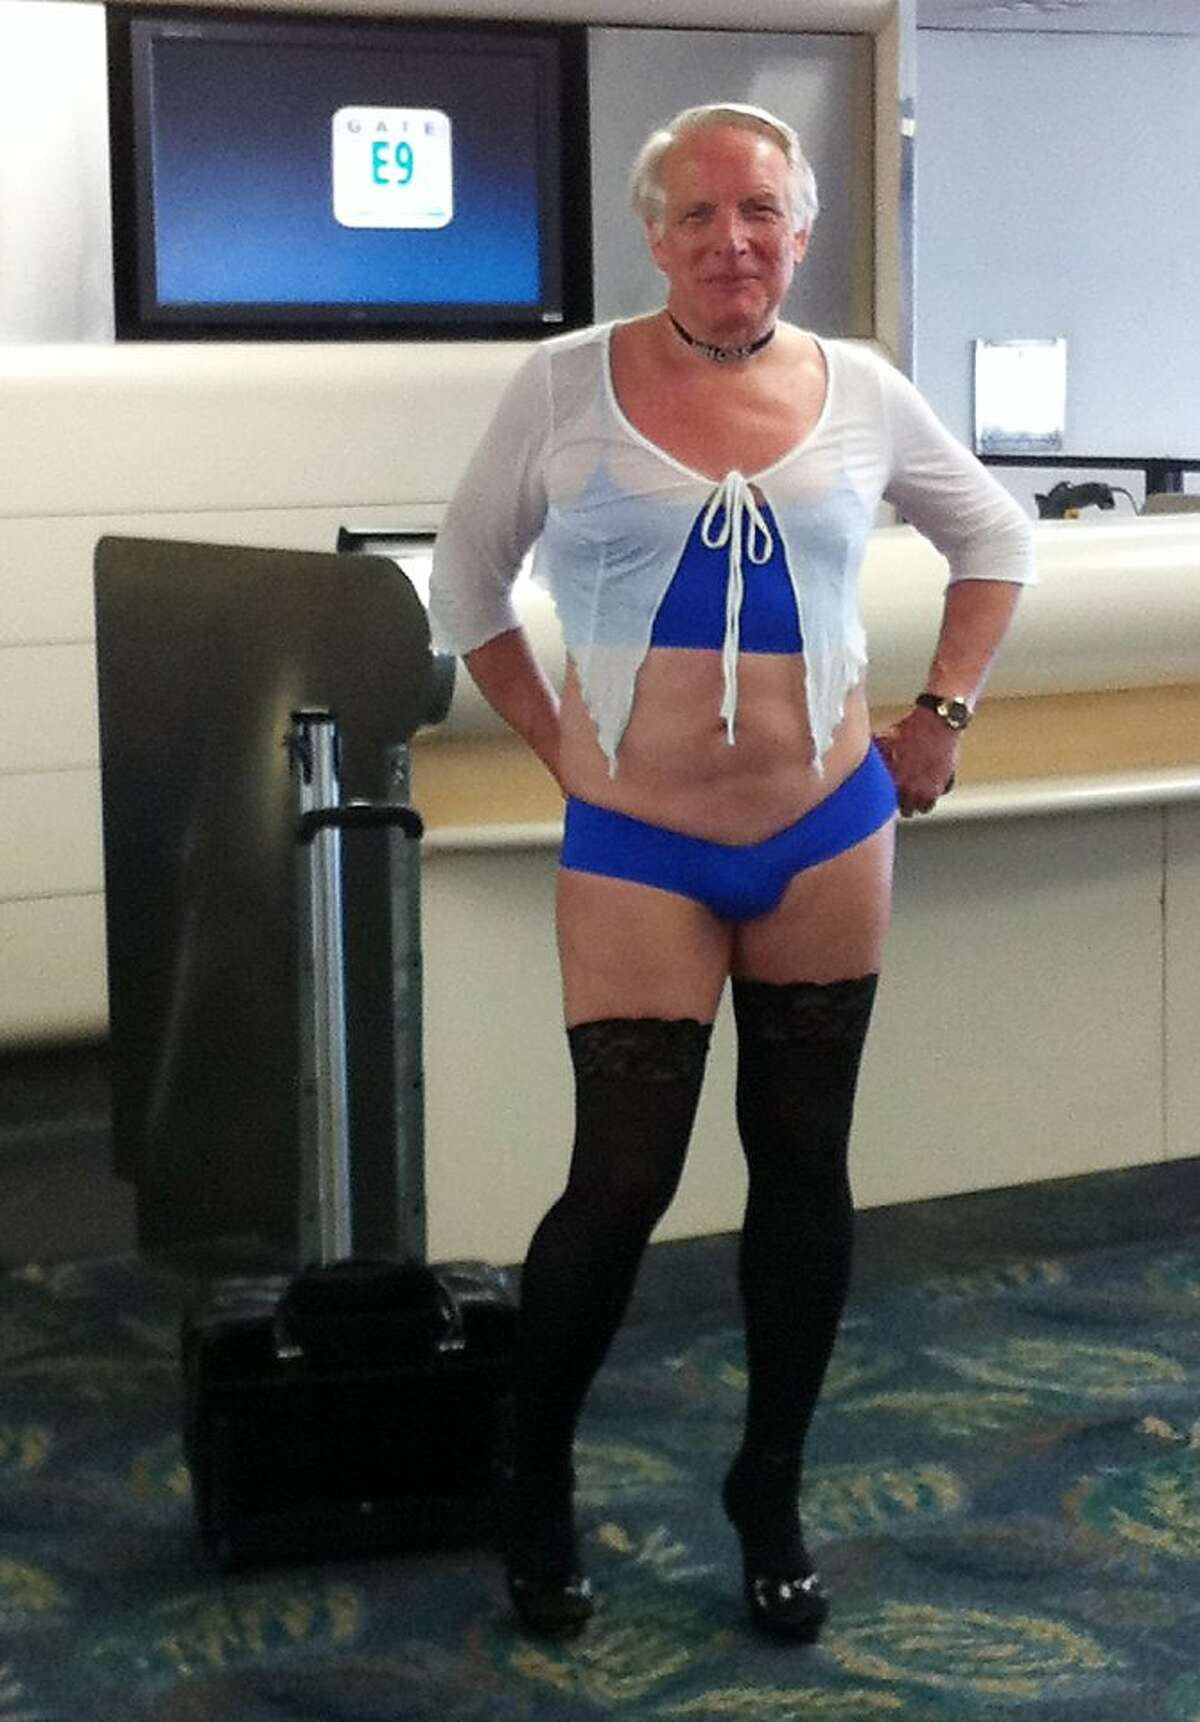 This is a June 9, 2011 photo provided by airline passenger Jill Tarlow shows an unnamed passenger scantily dressed and taken at the airport in Fort Lauderdale, Fla. US Airways is defending its decision to allow the man wearing skimpy women's panties and high heels to fly days before a football player was arrested on a plane in California over a dispute over his saggy pants. The man flew six days before University of New Mexico football player Deshon Marman was arrested on a US Airways flight in San Francisco over allegations he refused to pull up his pants. A US Airways spokeswoman told the San Francisco Chronicle employees were right not to ask the man on the Phoenix flight to cover himself but declined to comment on Marman's arrest.